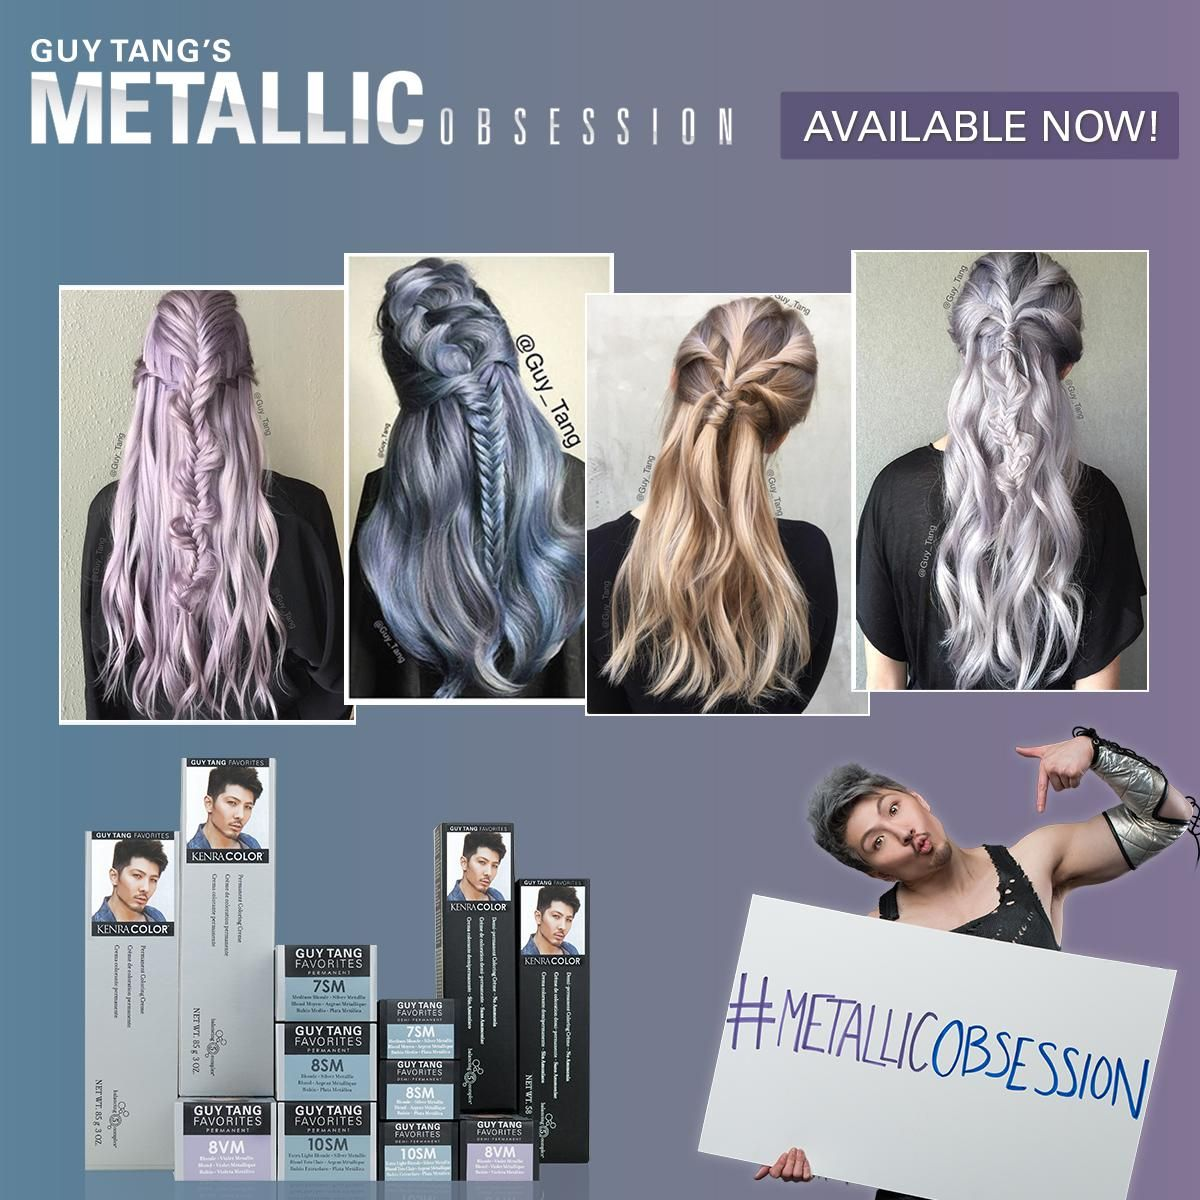 @Guy_Tang's #KenraColor #MetallicObsession shades are officially available today!! Visit your local distributor and purchase 3 shades to get Guy's journal with formulas, favorites and more! #GuyTangKenra #Kenra #HairBesties